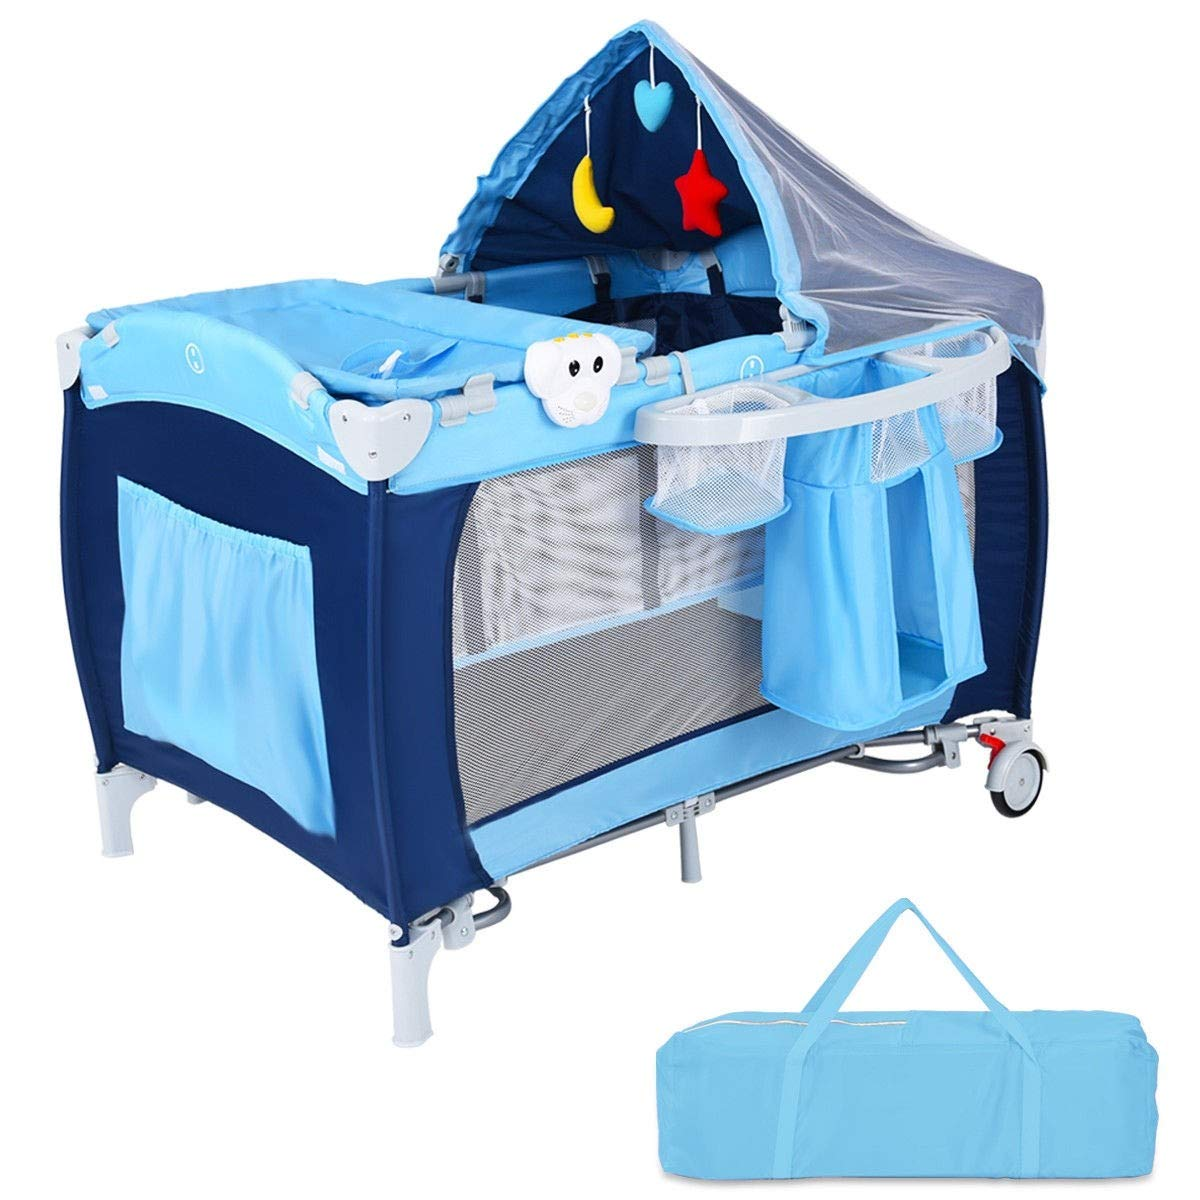 Foldable Baby Crib Playpen w Mosquito Net and Bag | Weight Capacity: 30.8 lbs | Blue by Cway